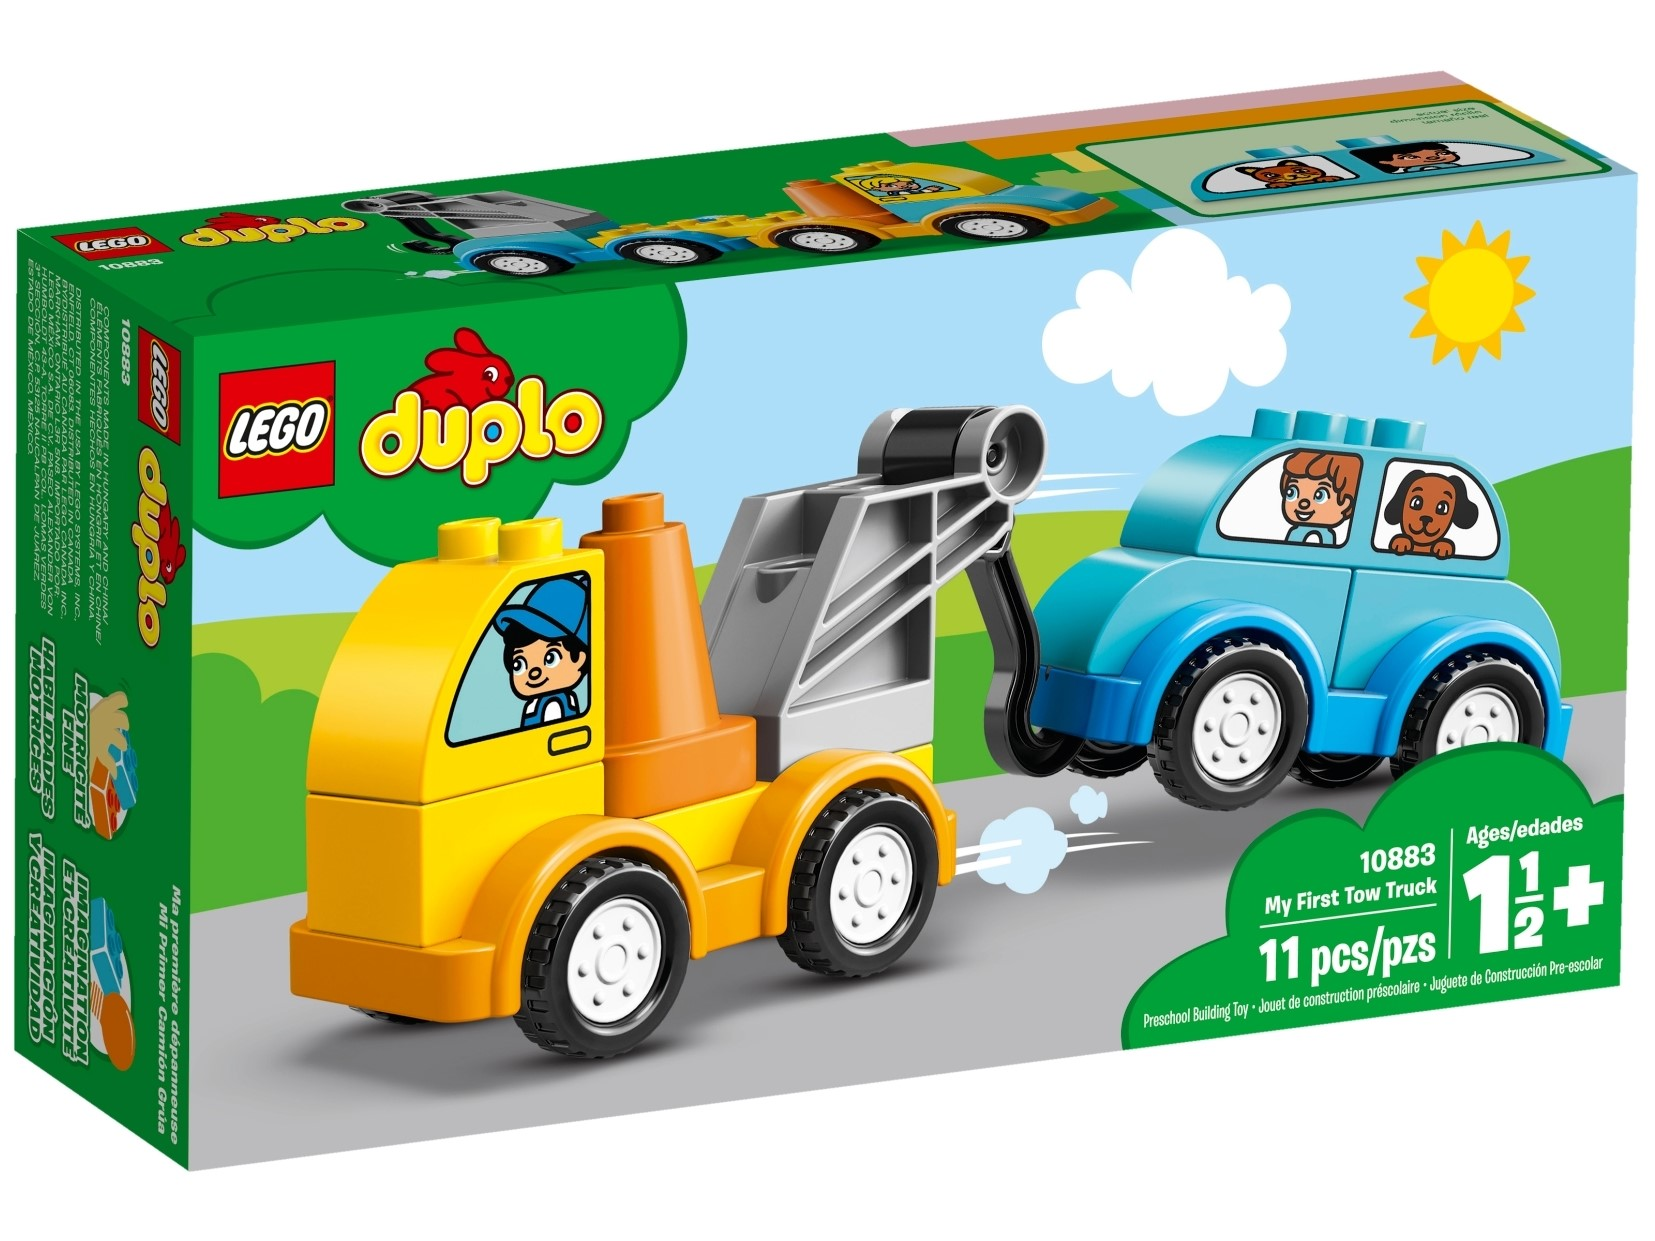 My First Tow Truck 10883 Duplo Buy Online At The Official Lego Shop Us